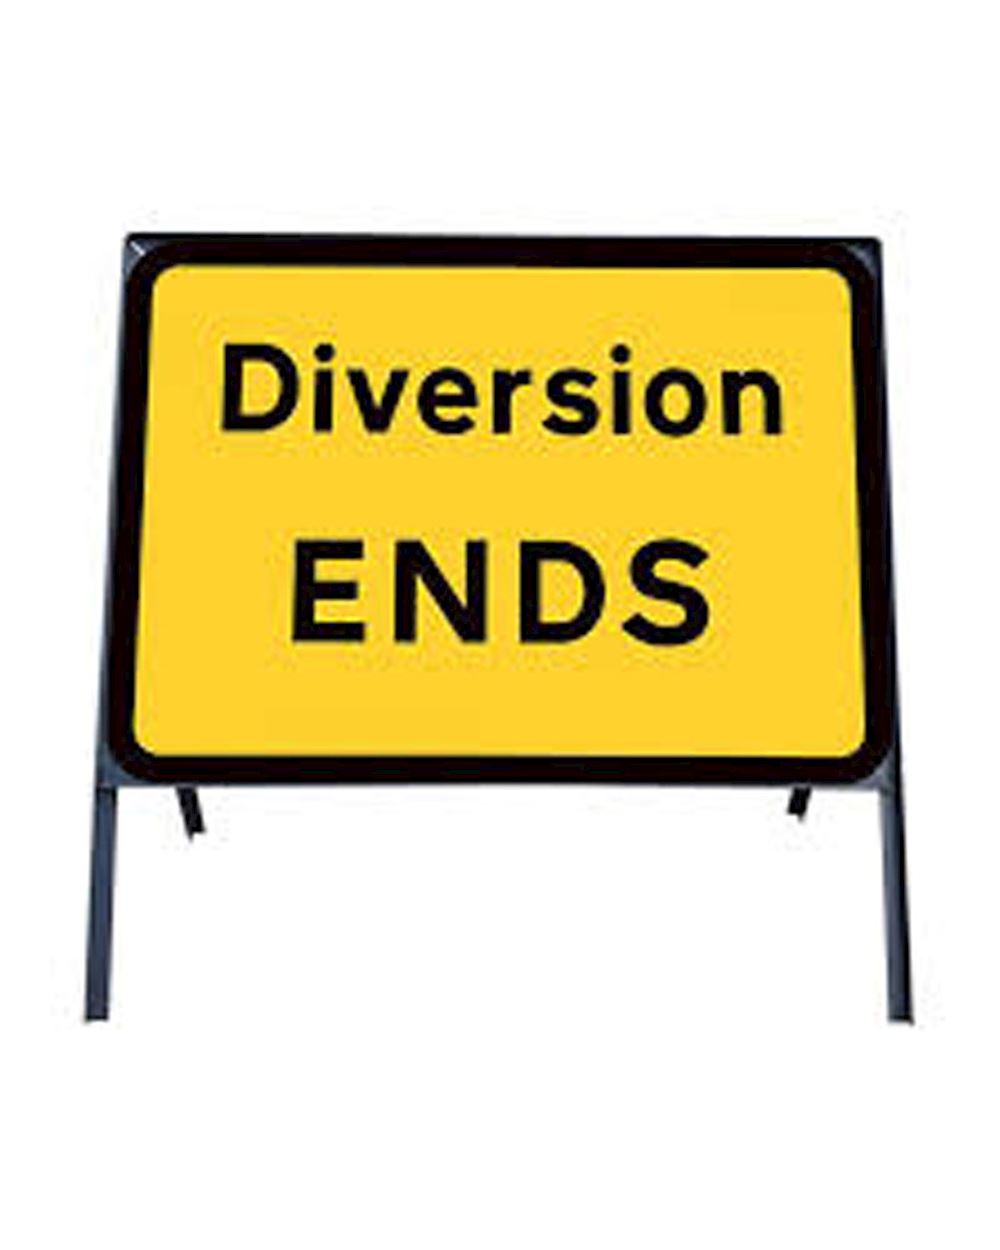 453f3badeec7 Diversion End Metal Sign In Frame Chapter 8 Red Book